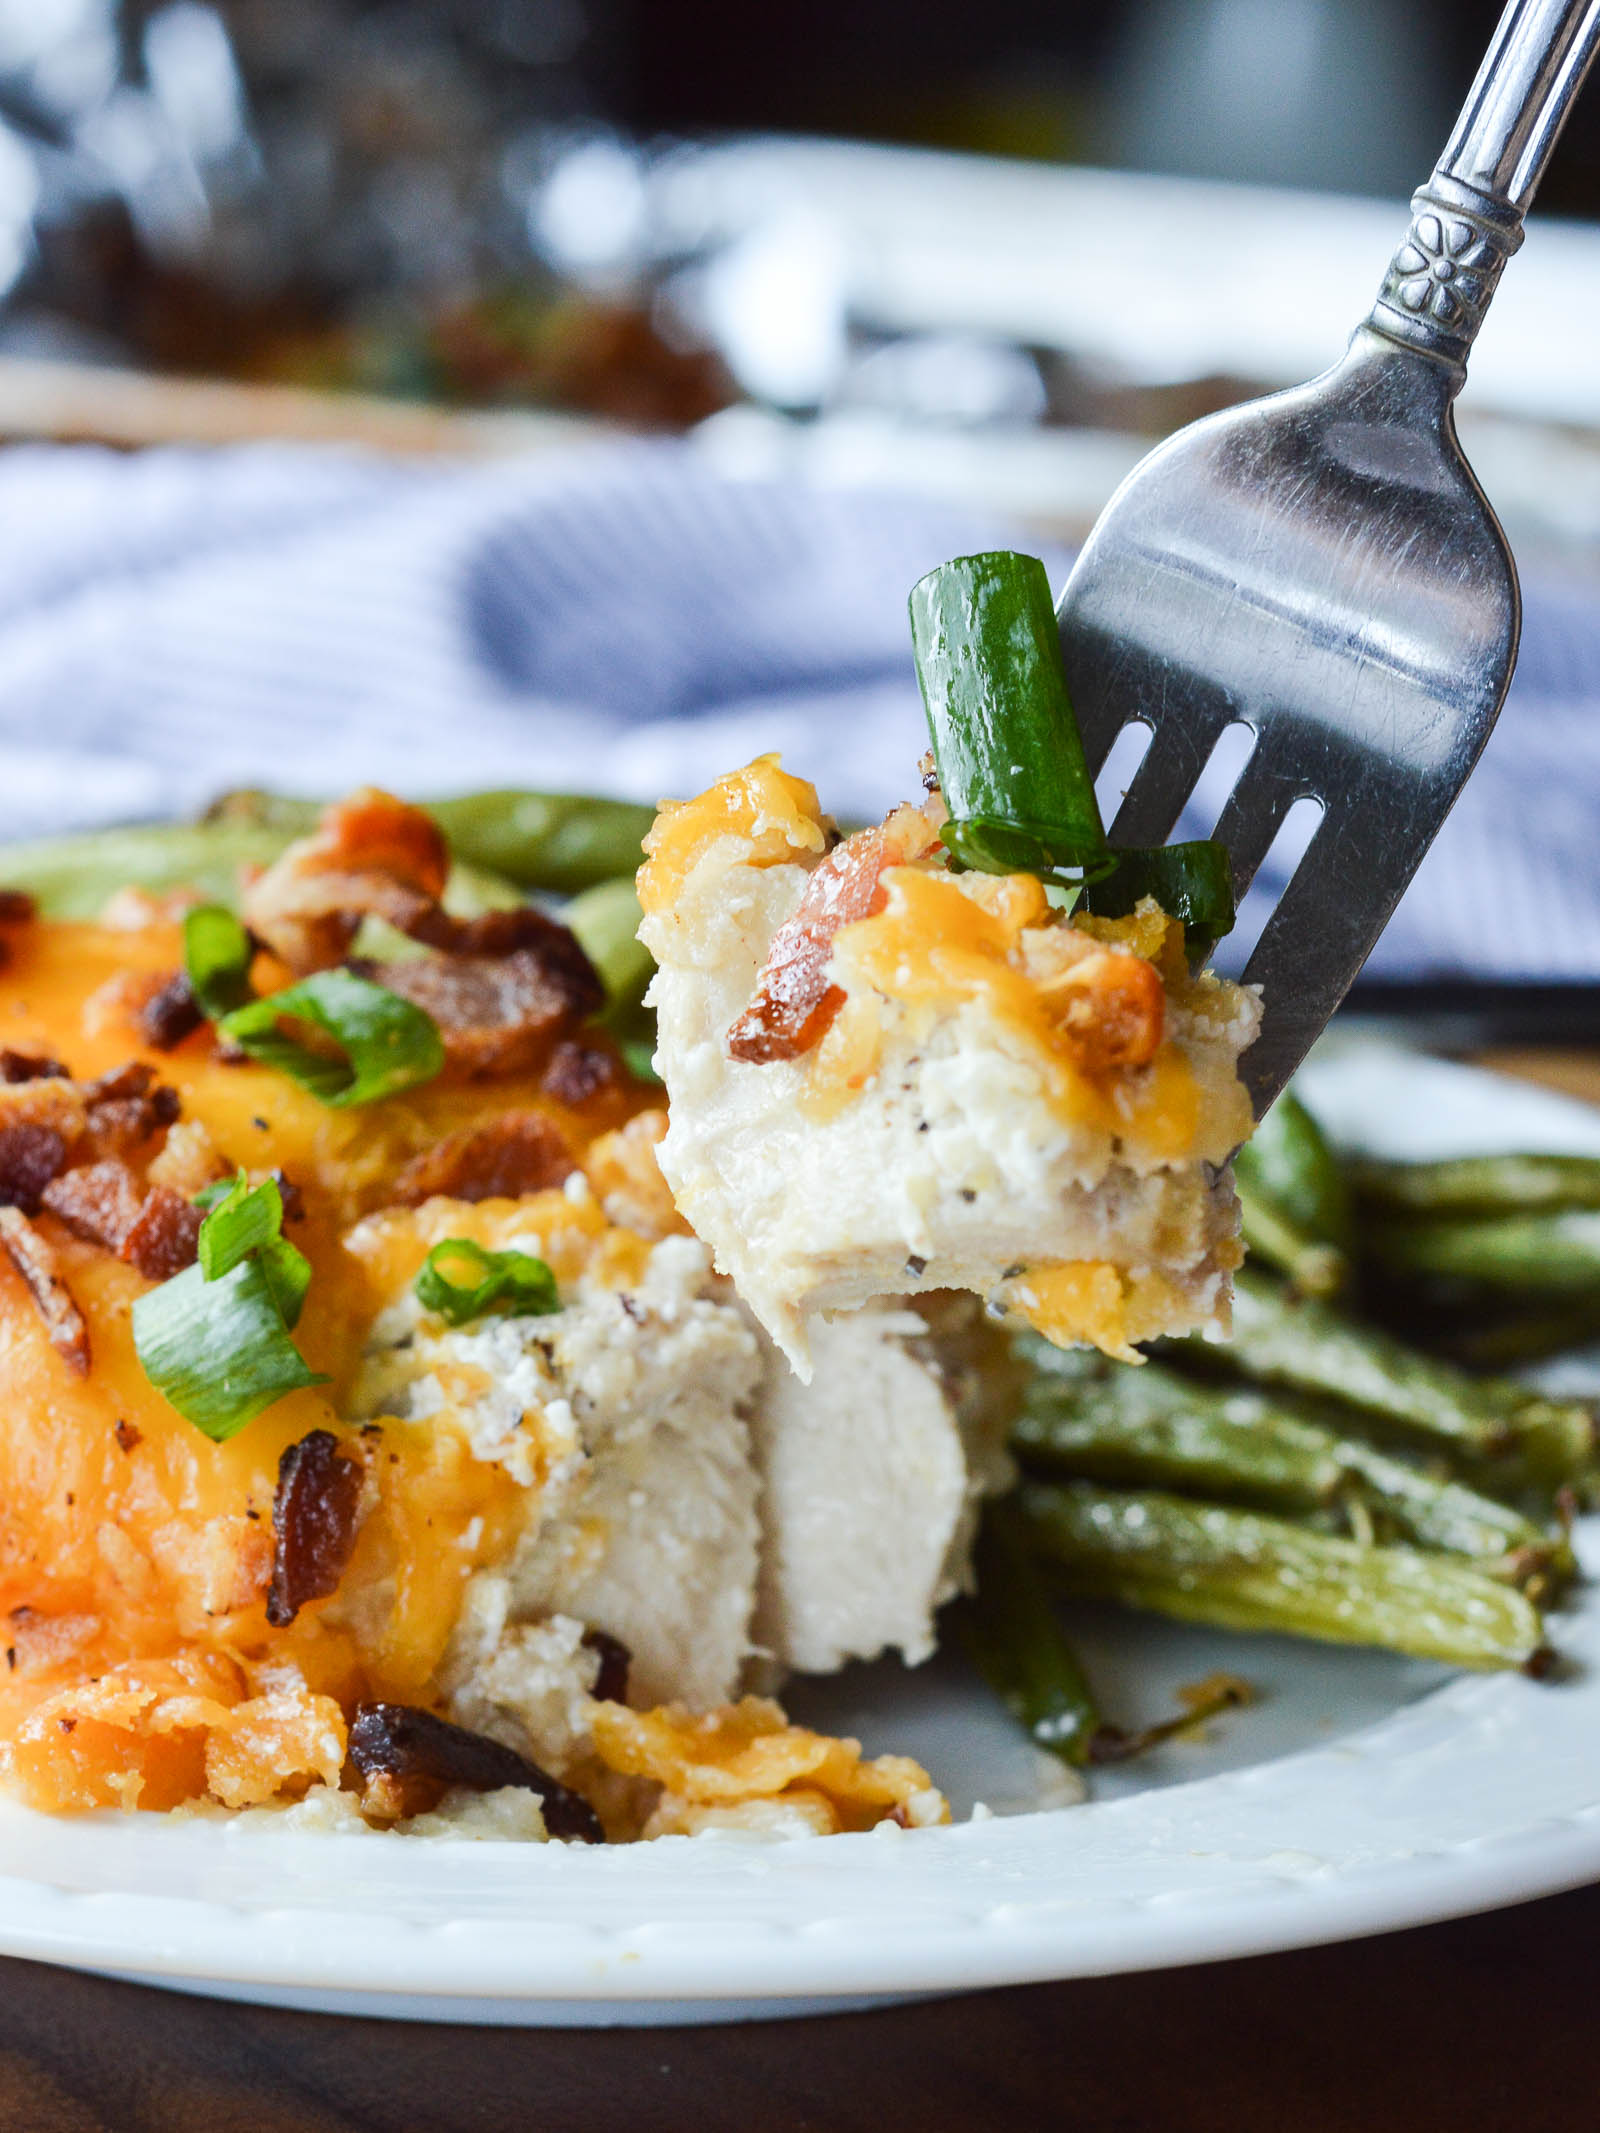 A bite of Smothered Cheesy Sour Cream Chicken on the end of a fork that hovers over the plate. You can see the layers of the chicken dish - seasoned sour cream, melted cheese, crumbled bacon, and chopped green onions.